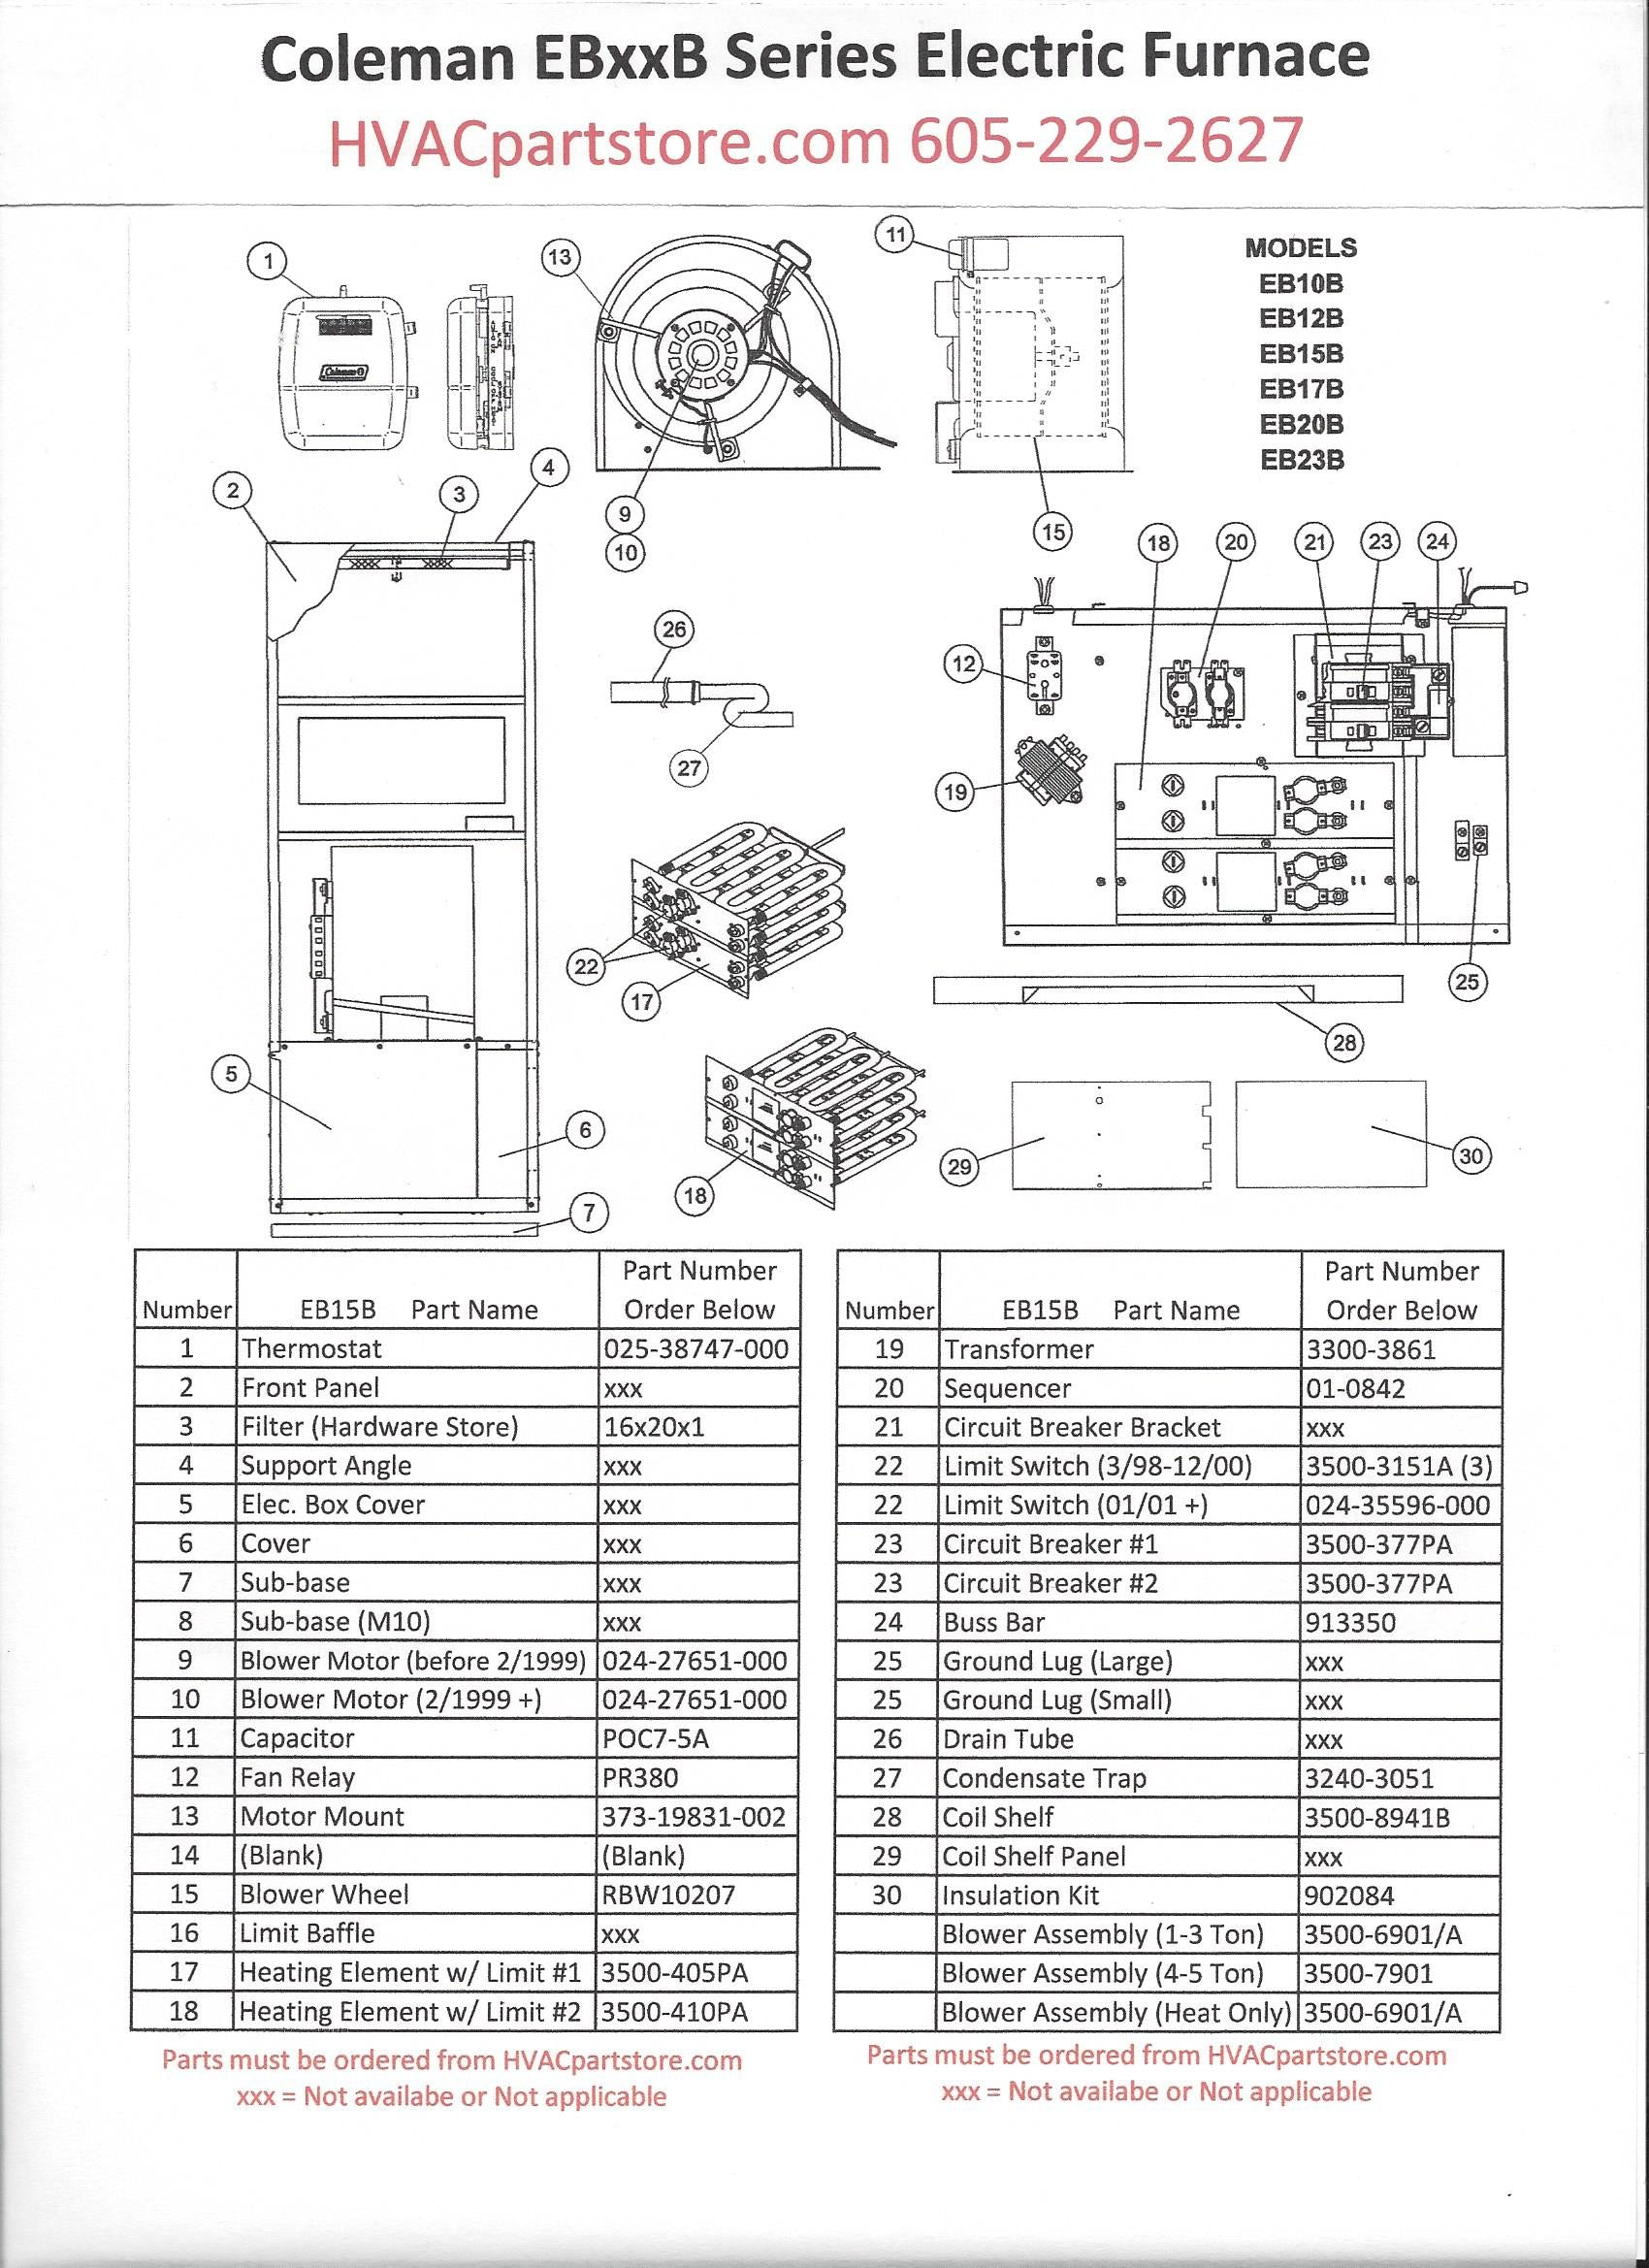 Click here to view a manual with wiring diagrams.